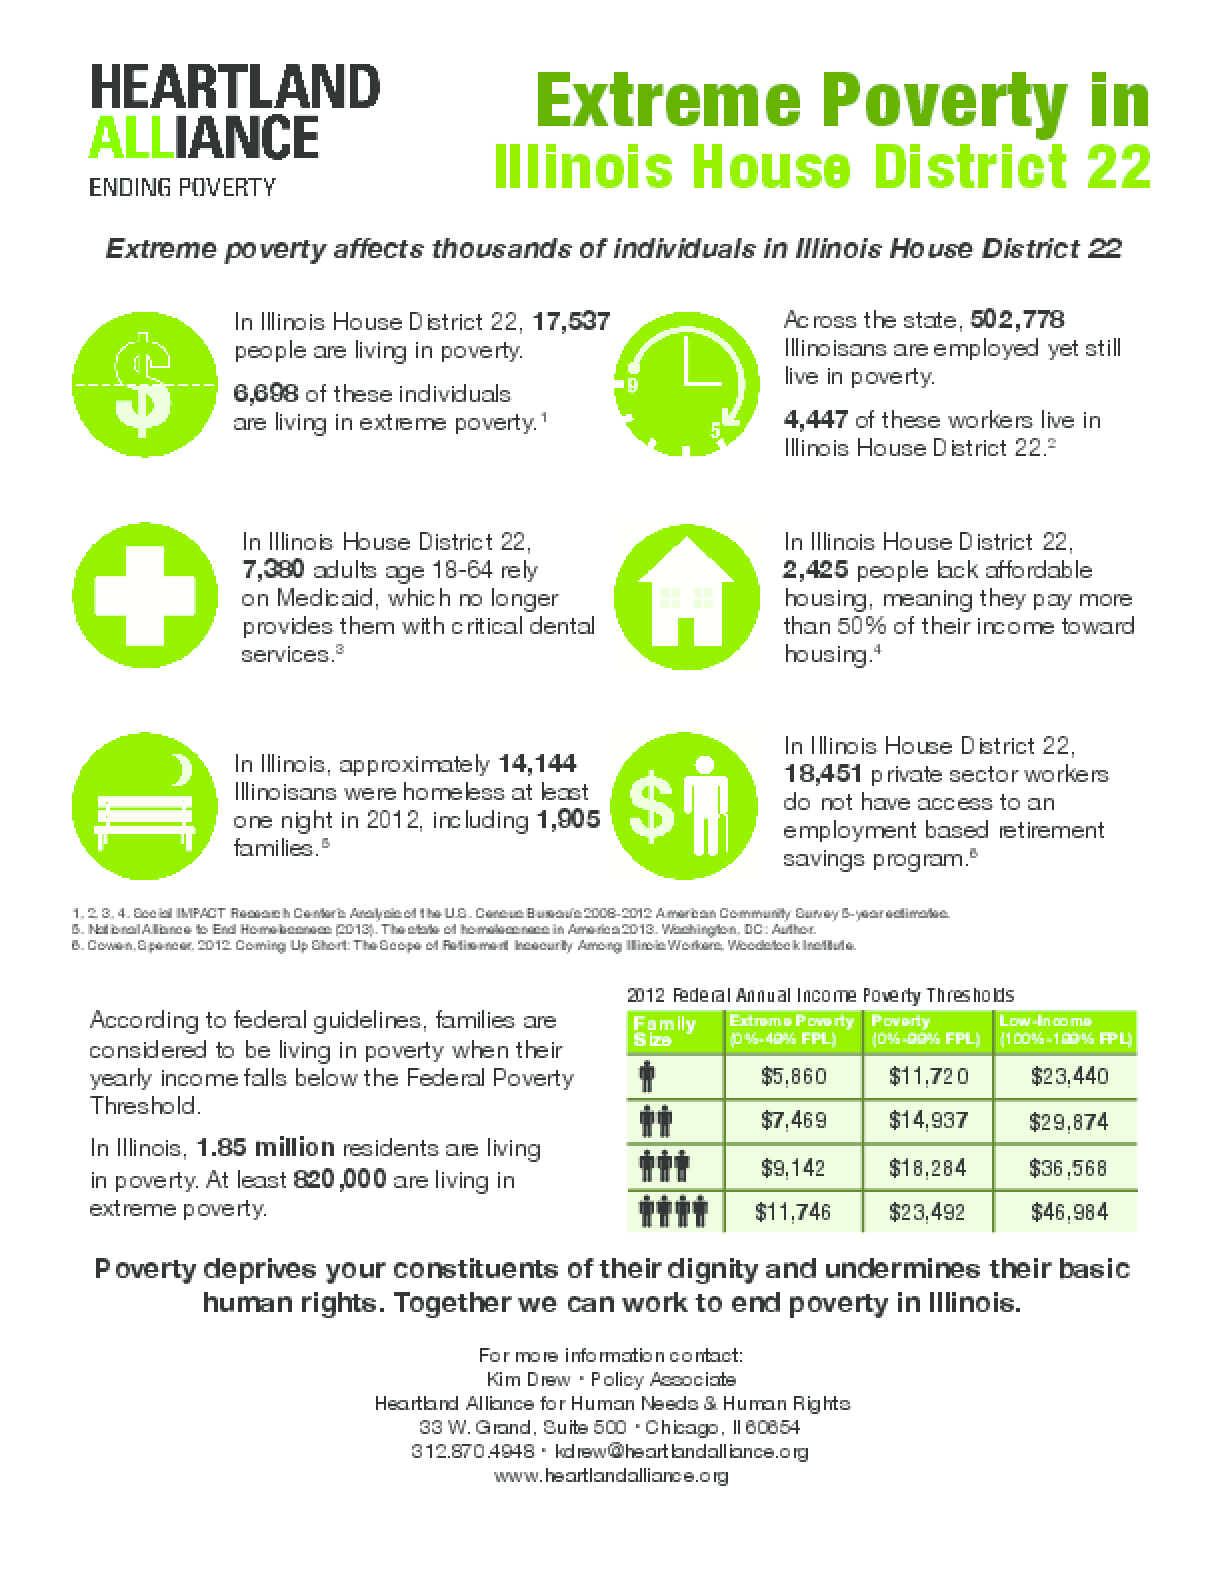 Poverty Fact Sheets for Illinois House District 22